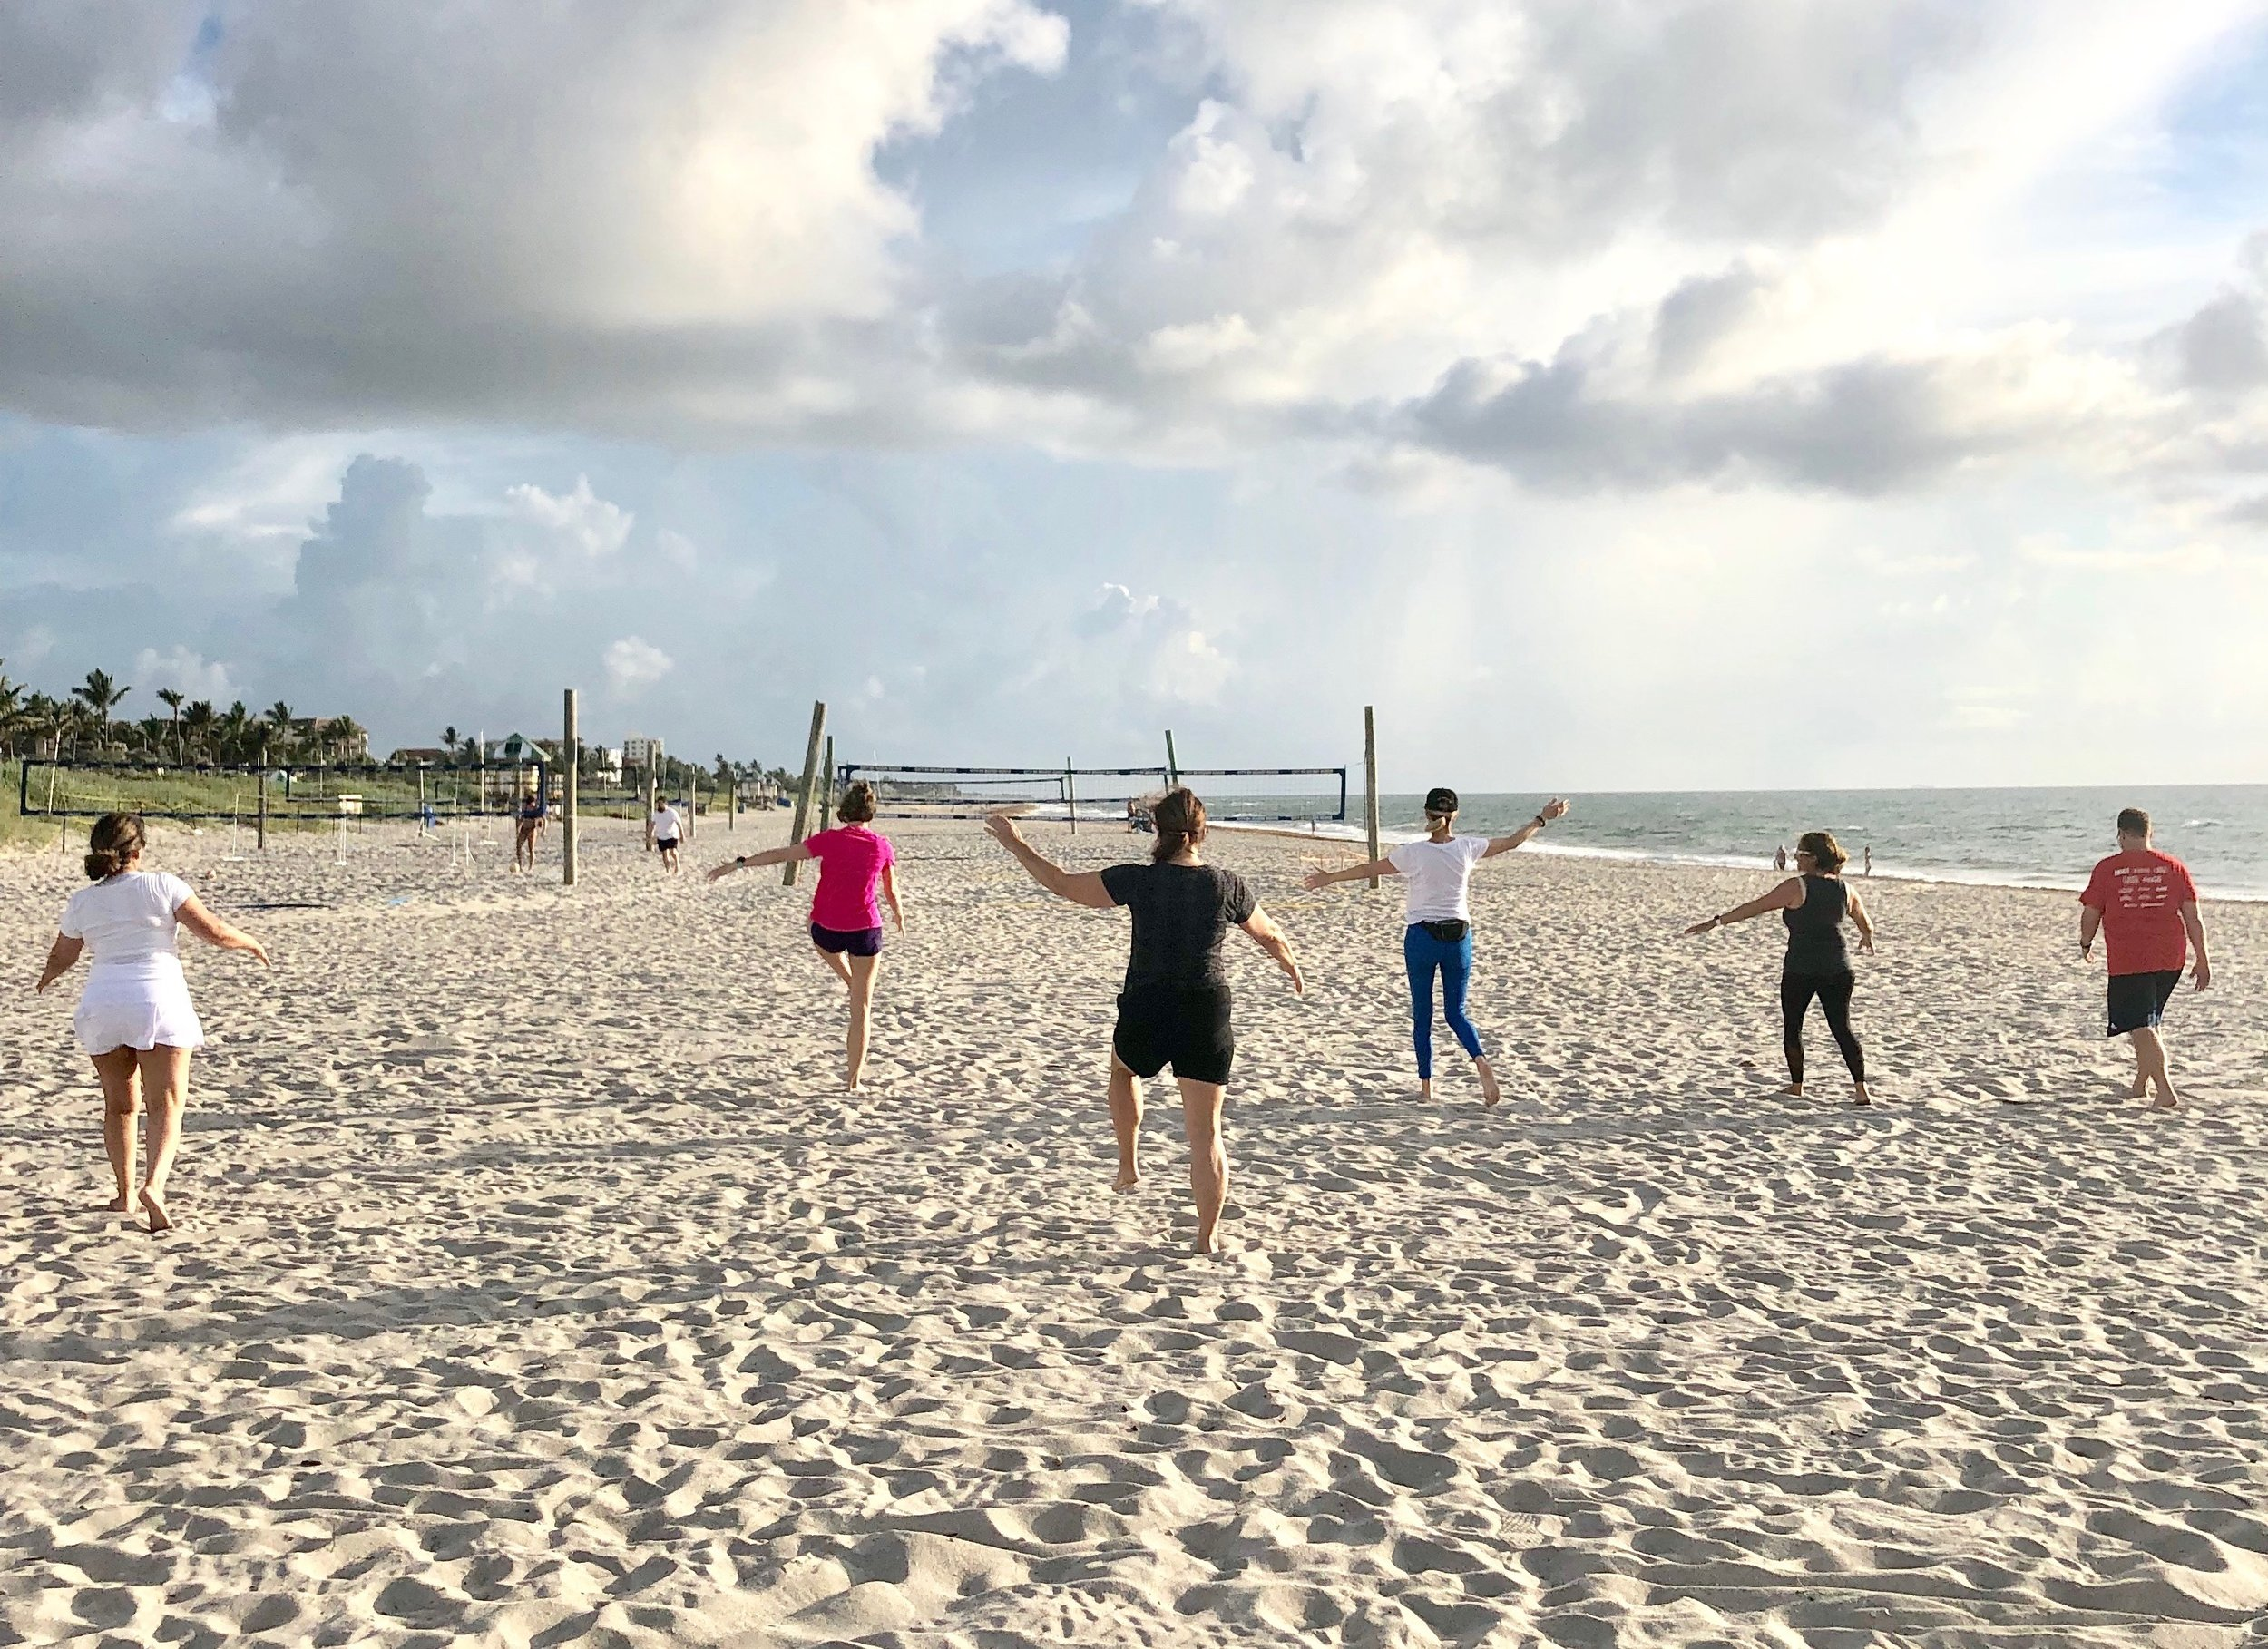 Boot camp guests enjoy a workout on the beach during their vacation.